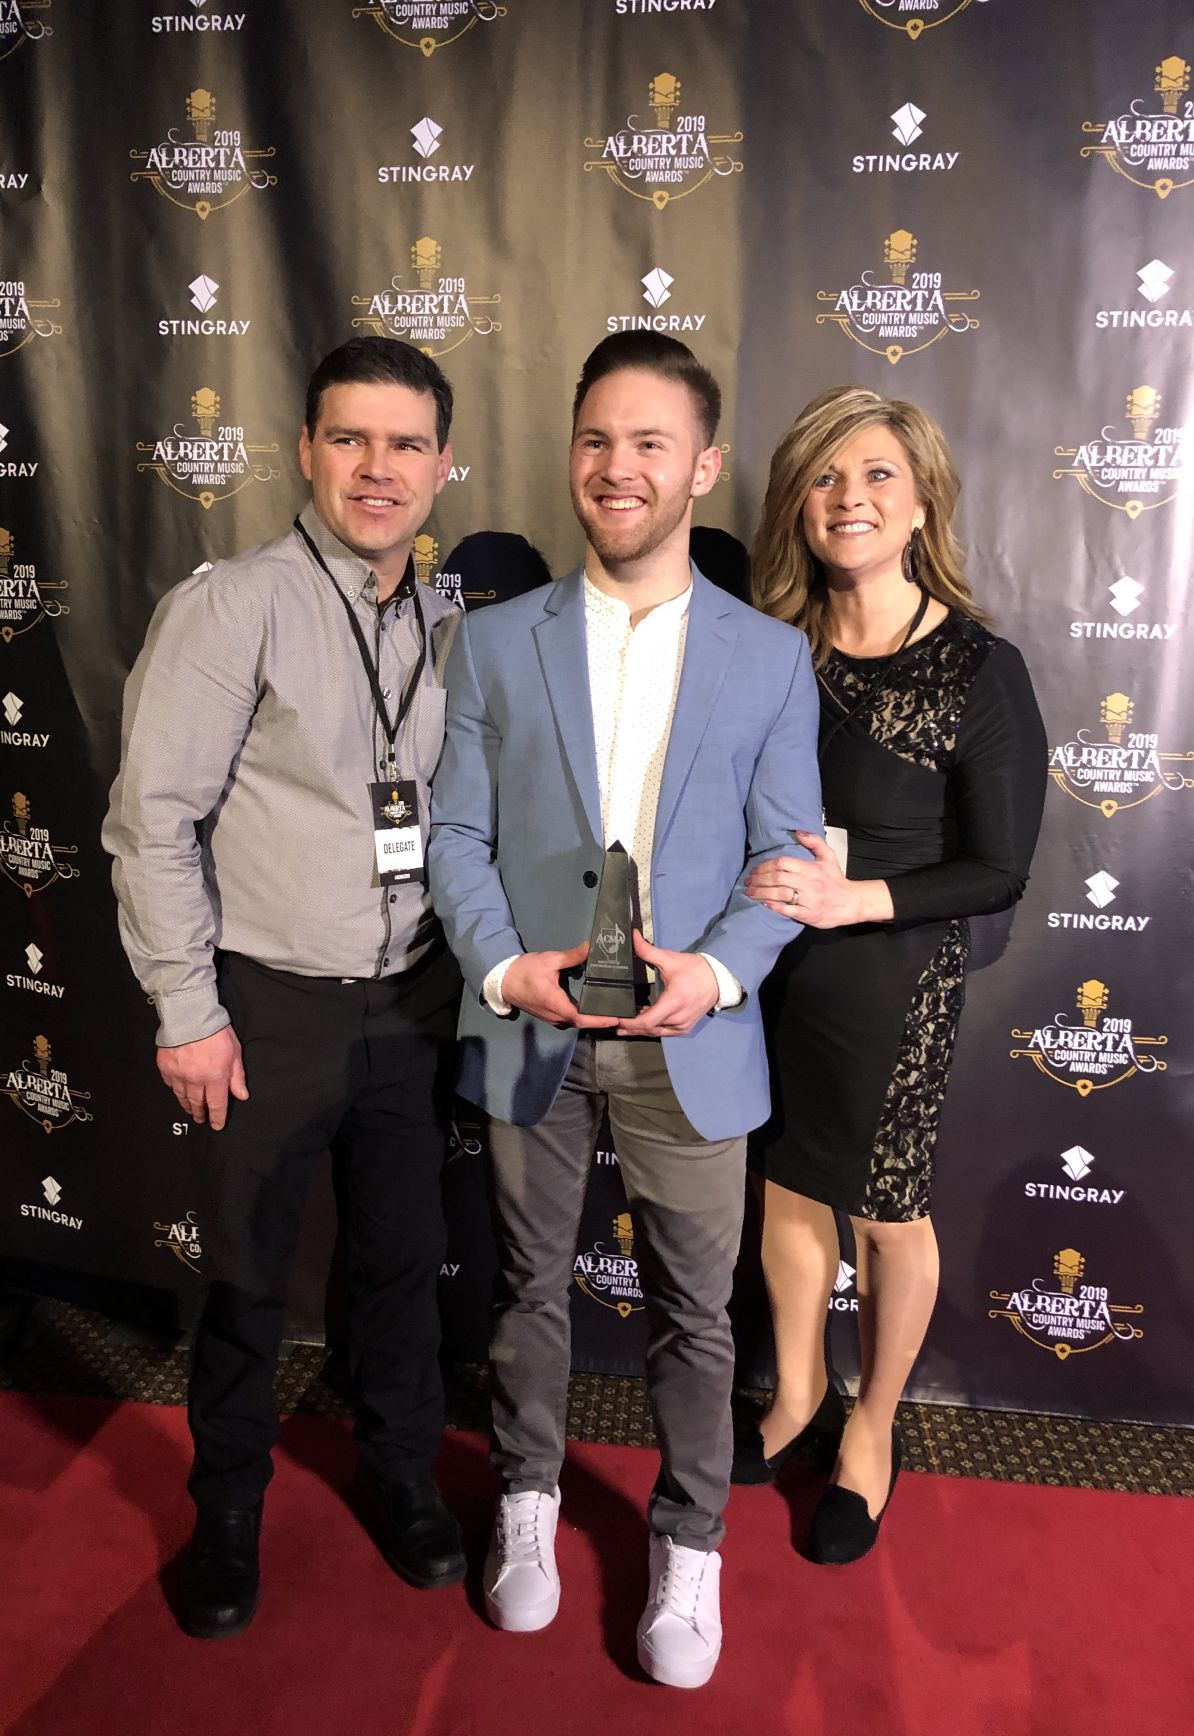 Ben Chase wins first Alberta Country Music Award